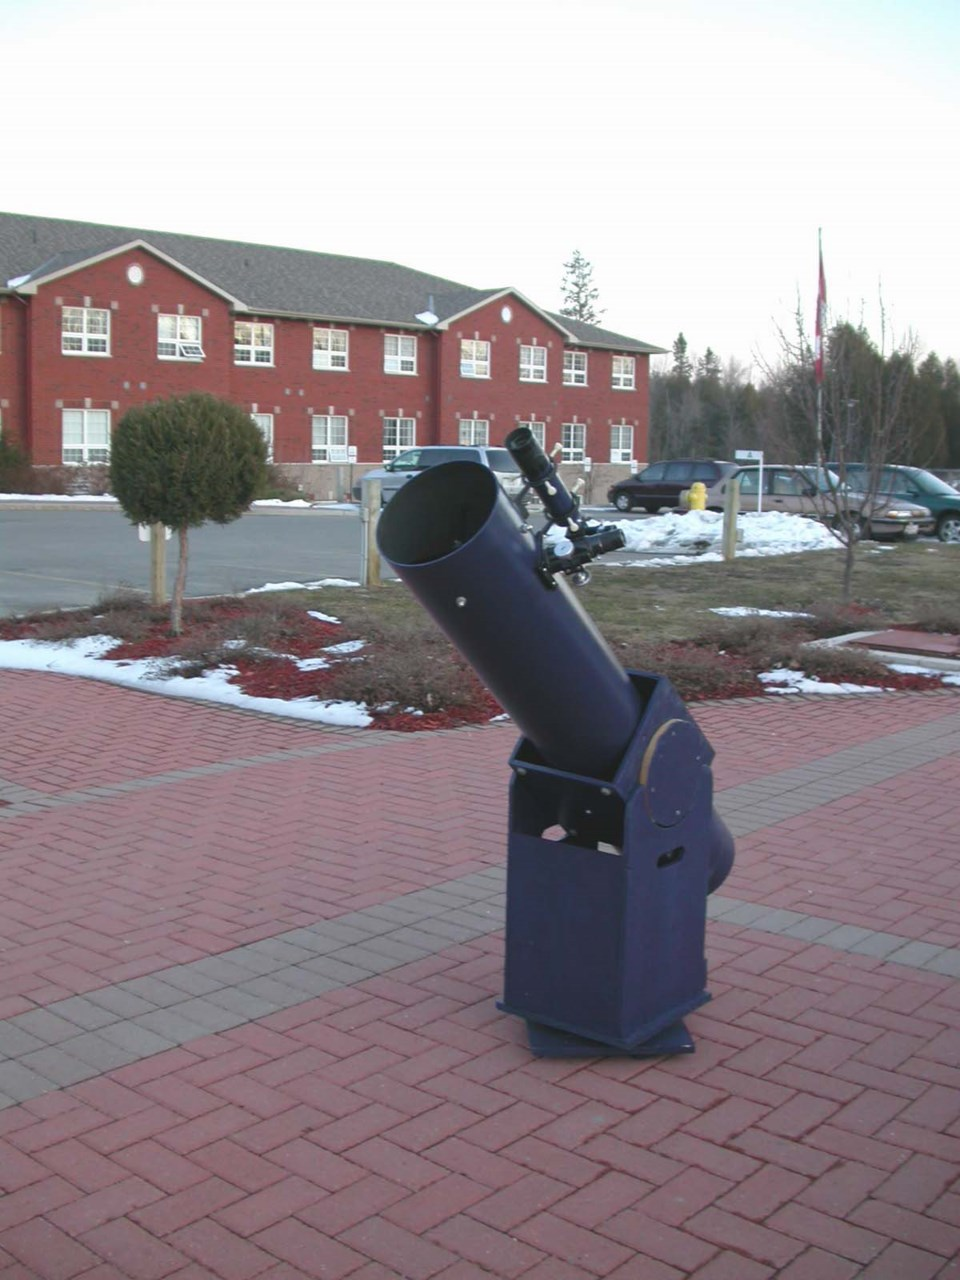 A telescope like this 1977 model with a Dobsonian mount that has no electronics costs abotu $600 to